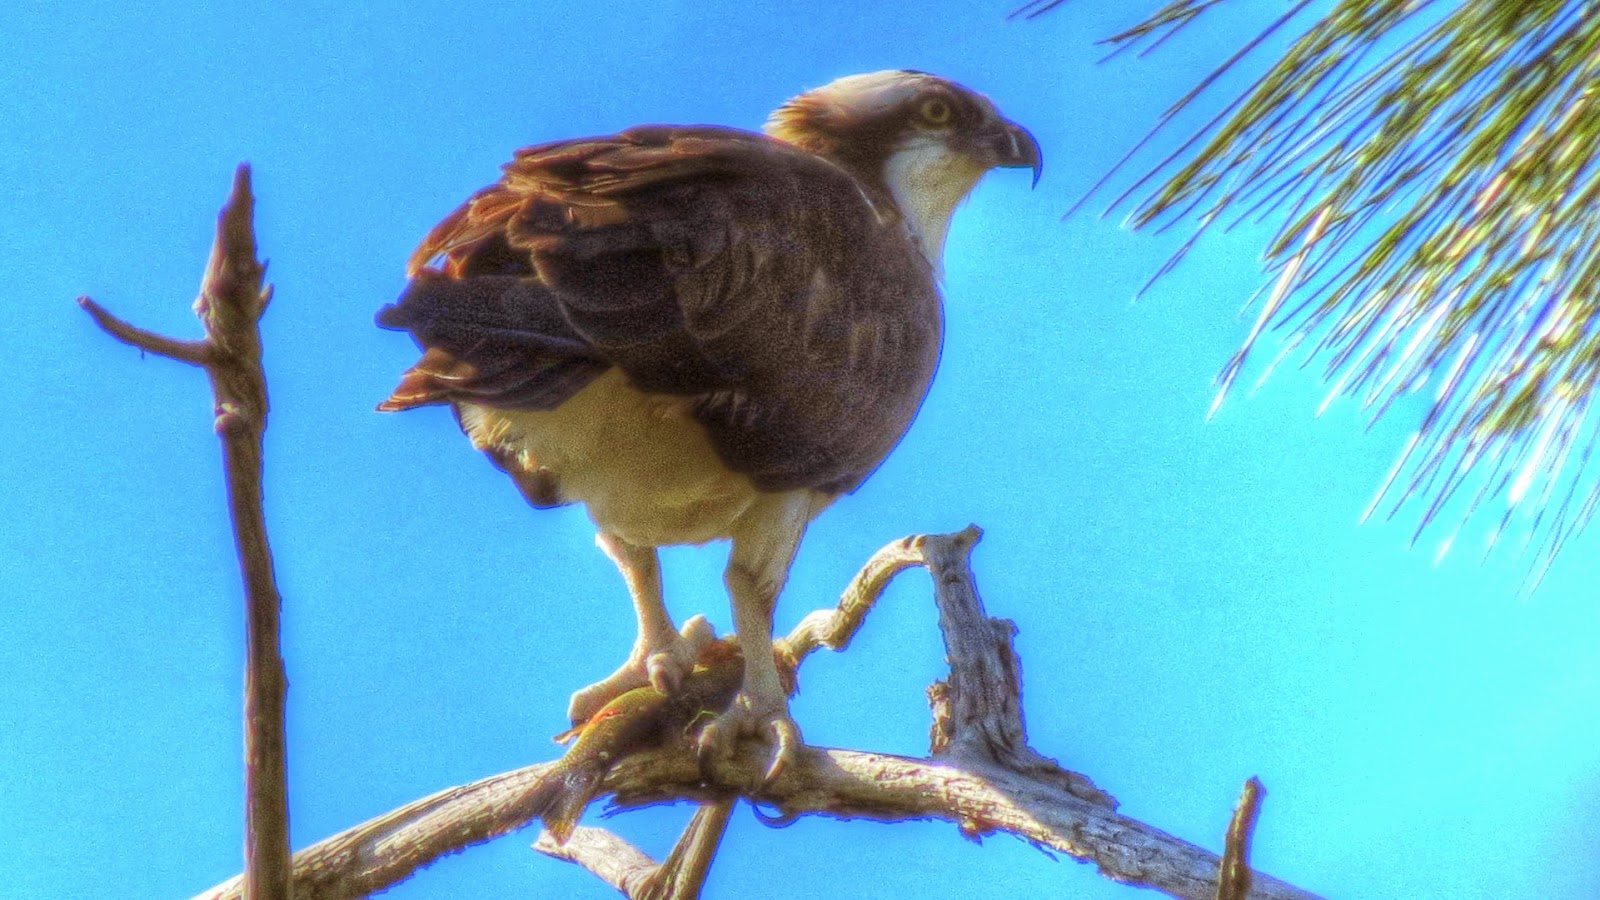 Osprey fish hawk fish eagle in Florida